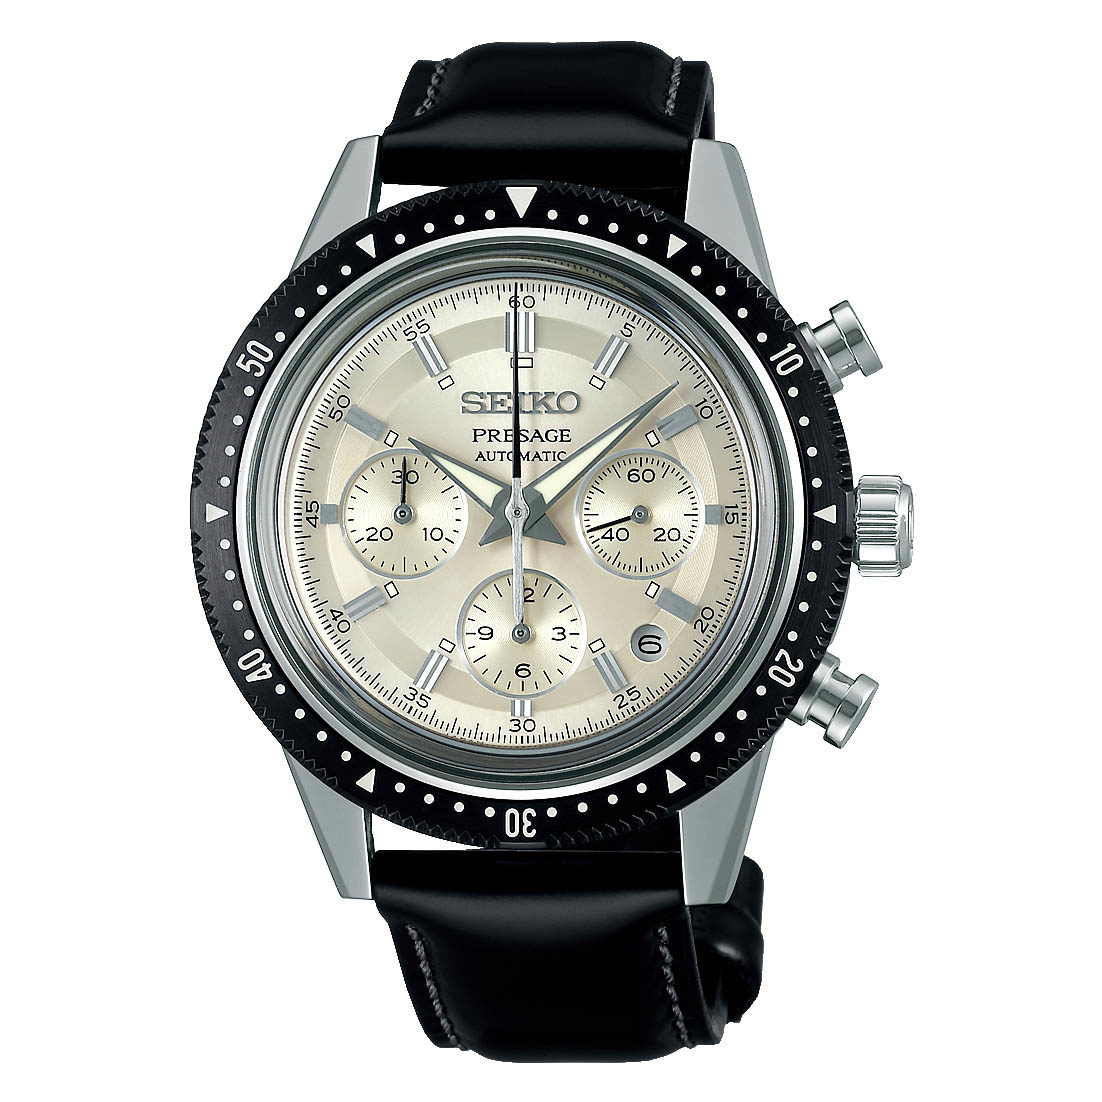 Seiko Presage Chronograph Limited Edition SRQ031J1 watches reviews